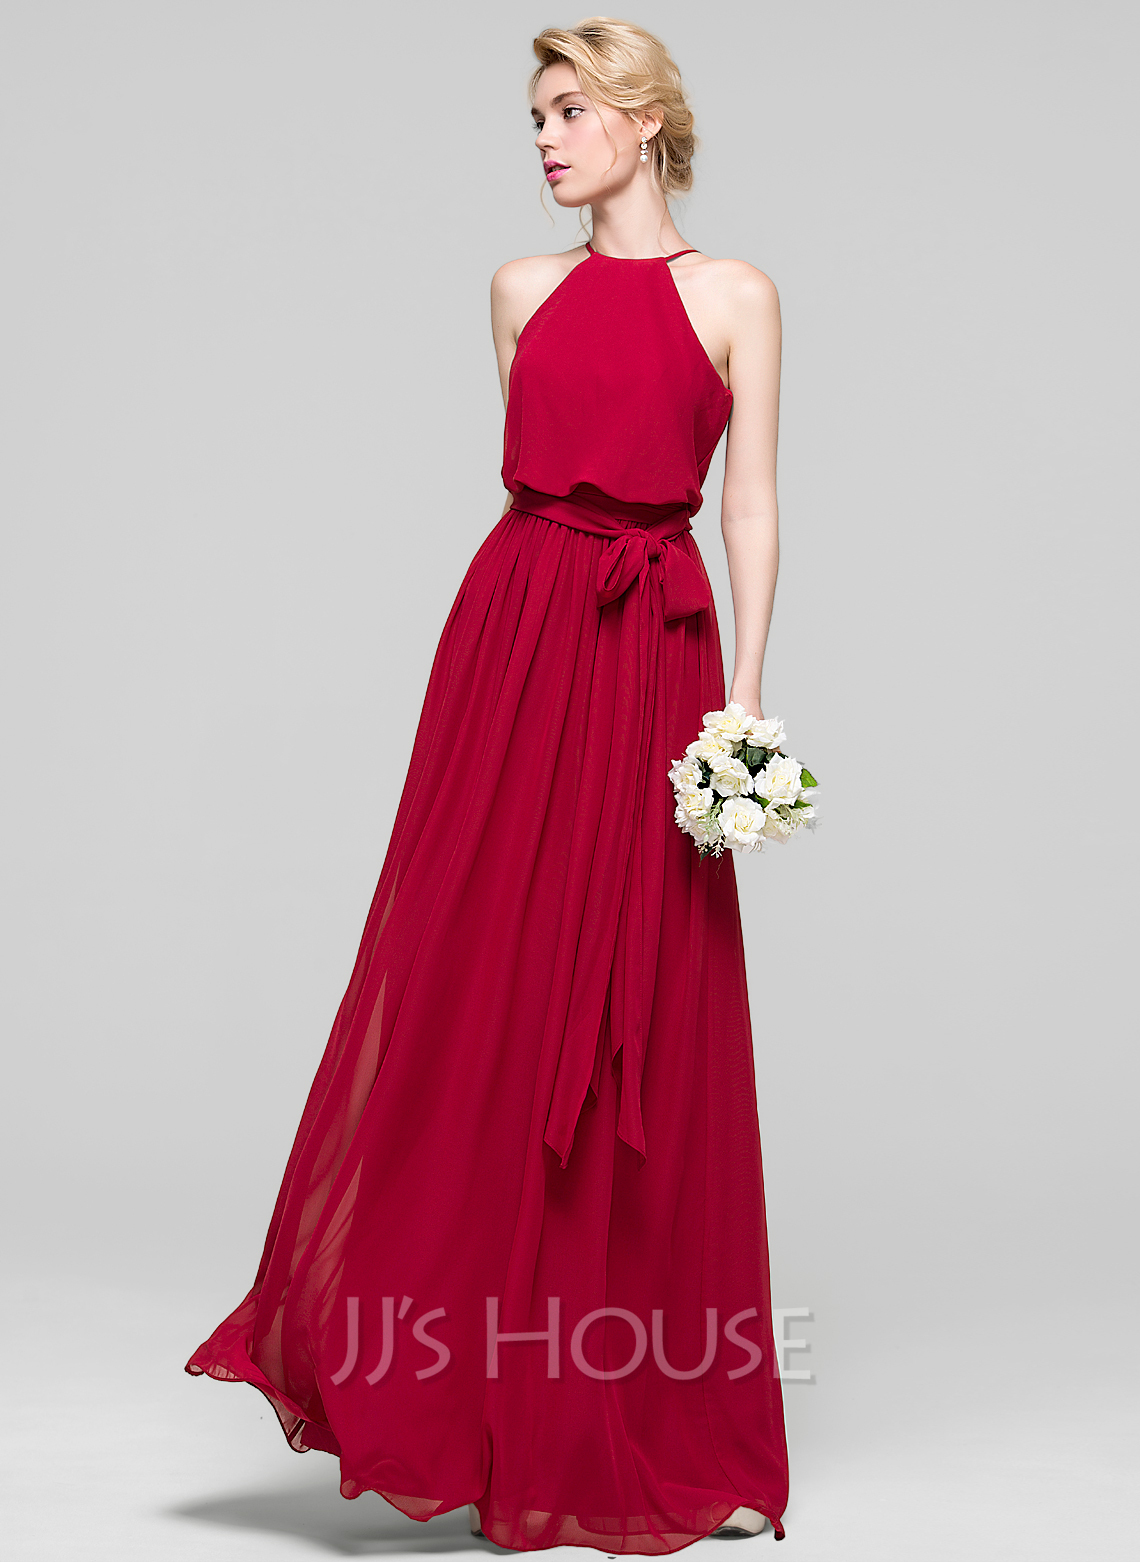 6605b5e055c A-Line Princess Scoop Neck Floor-Length Chiffon Bridesmaid Dress With Bow(.  Loading zoom